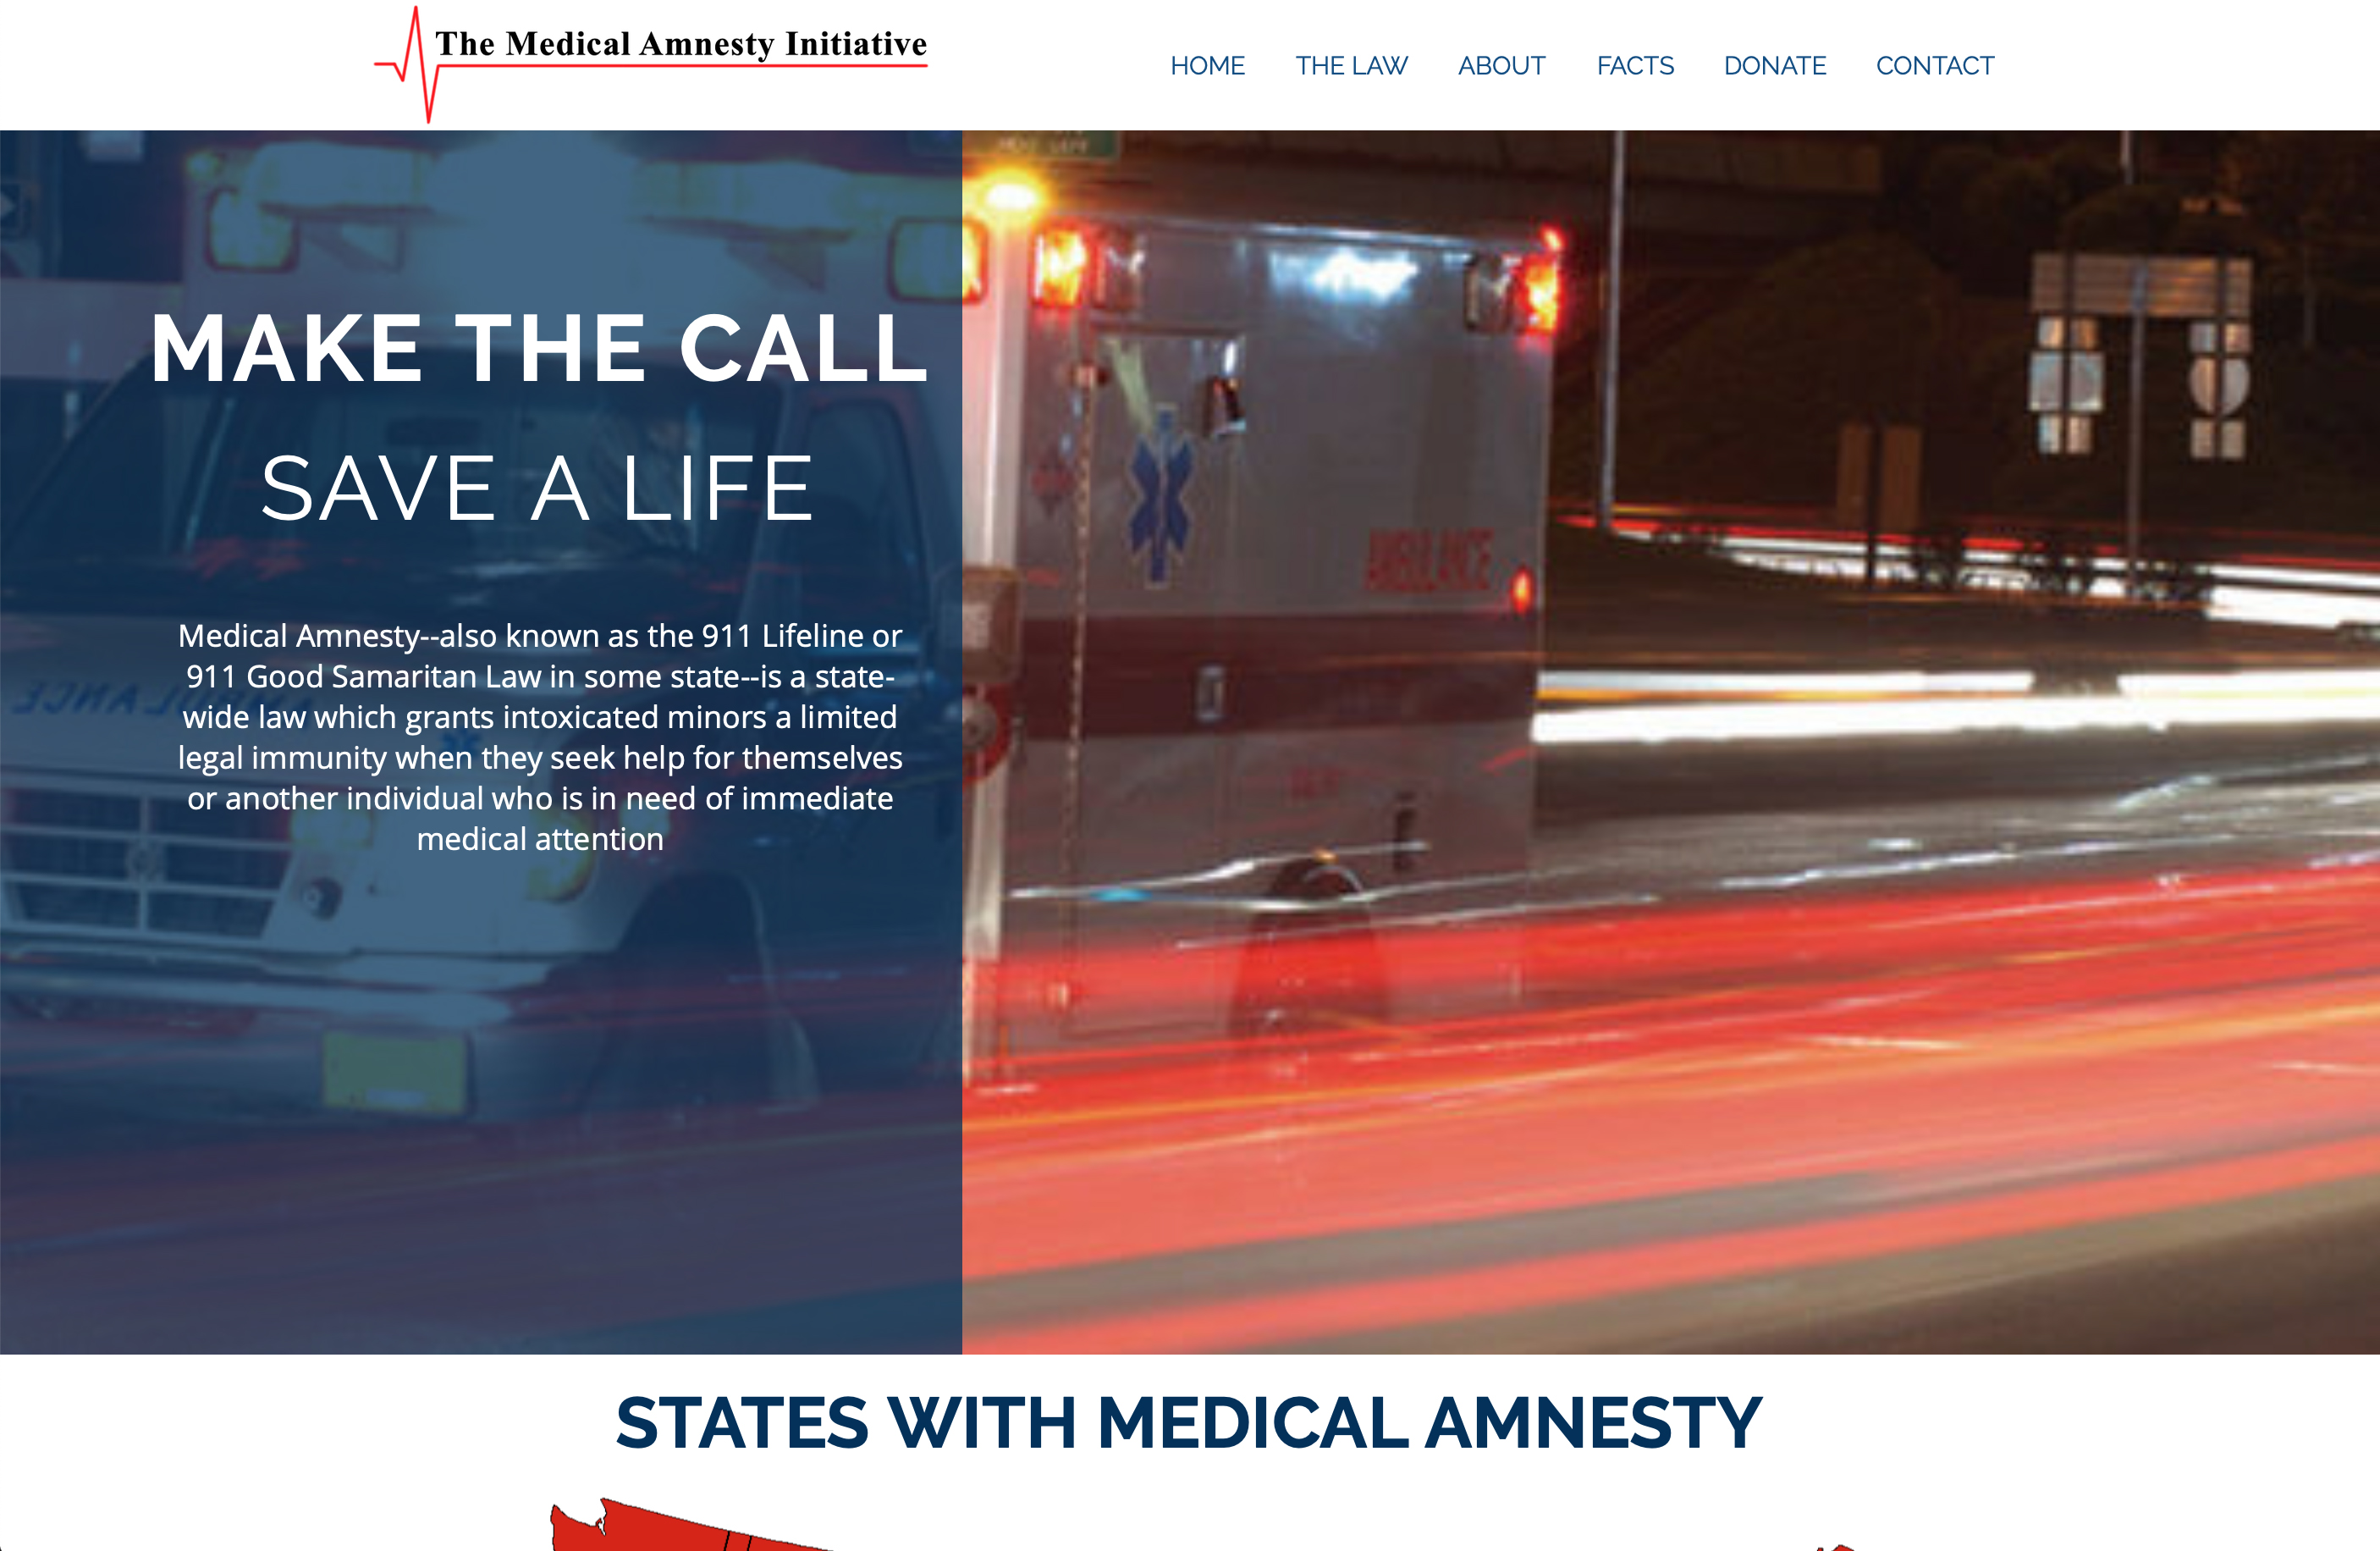 The Medical Amnesty Initiative